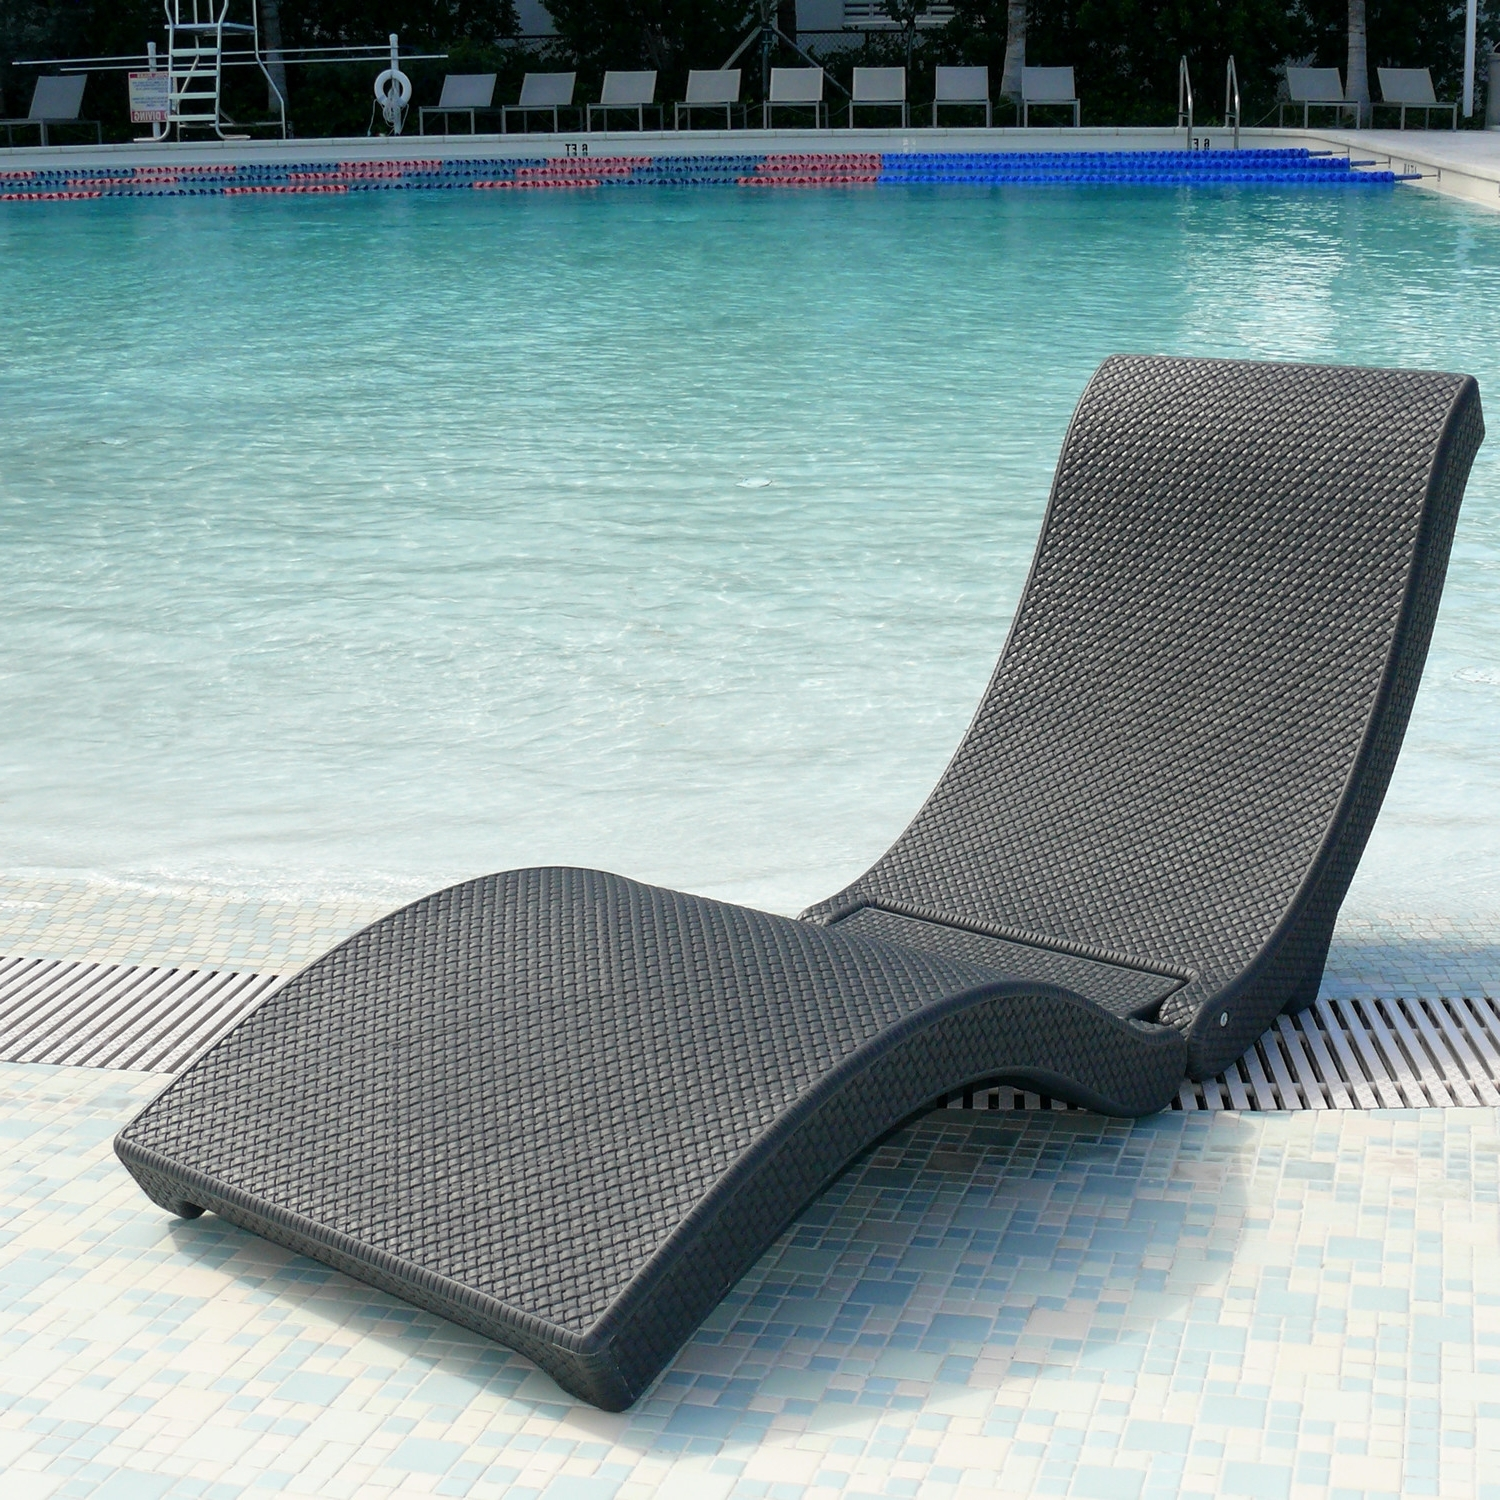 Poolside Chairs 15 Inspirations Of Chaise Lounge Chairs For Poolside